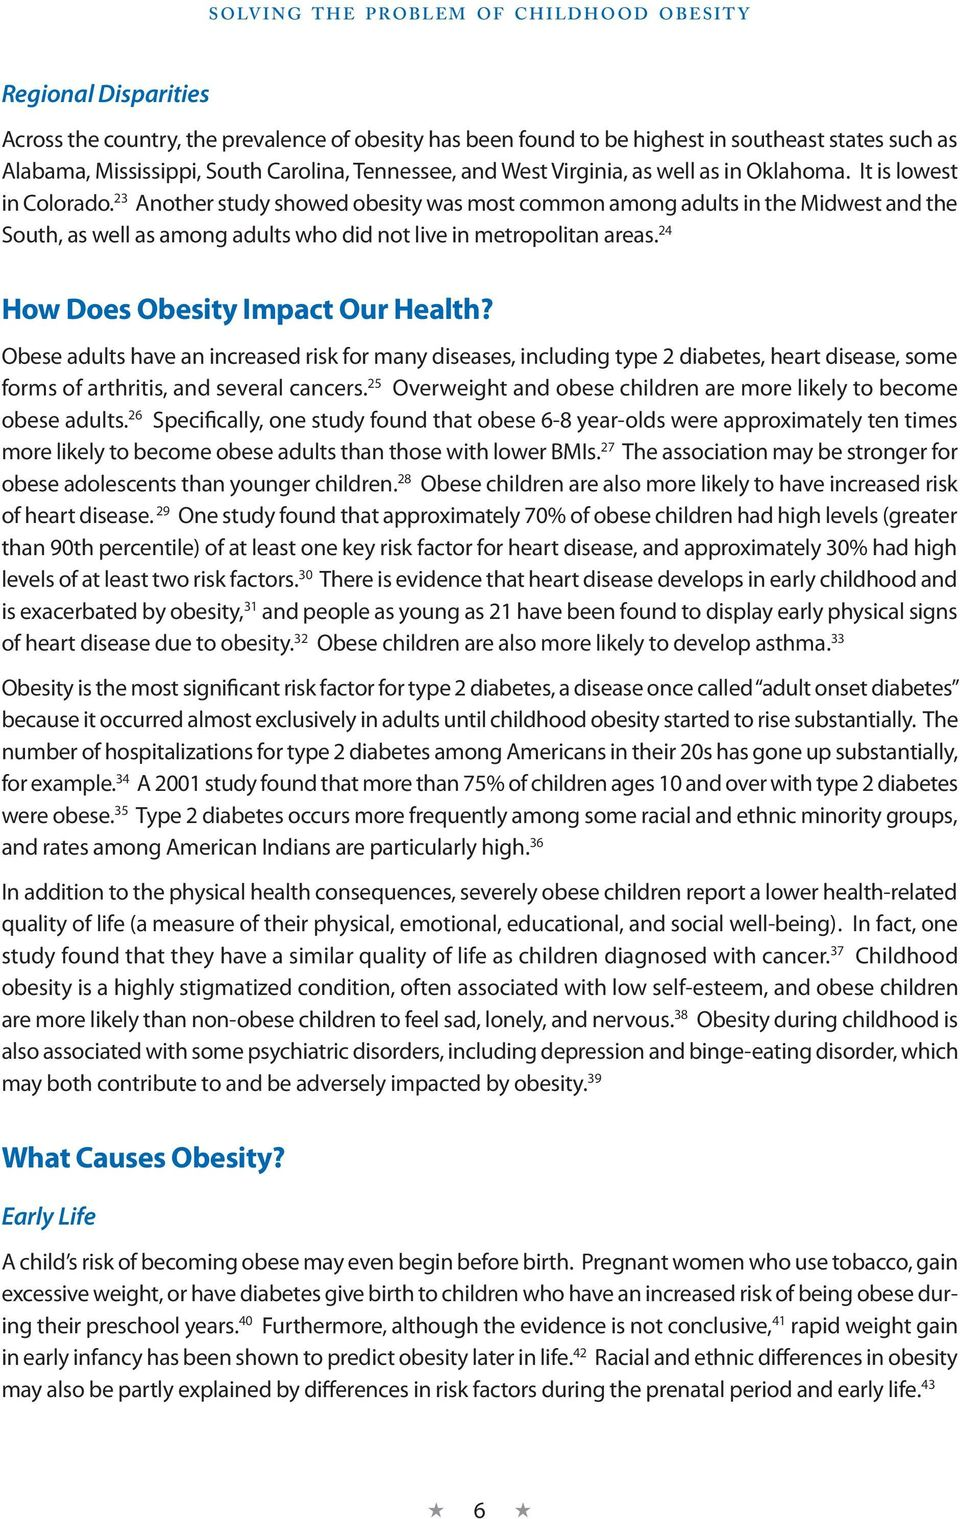 23 Another study showed obesity was most common among adults in the Midwest and the South, as well as among adults who did not live in metropolitan areas. 24 How Does Obesity Impact Our Health?